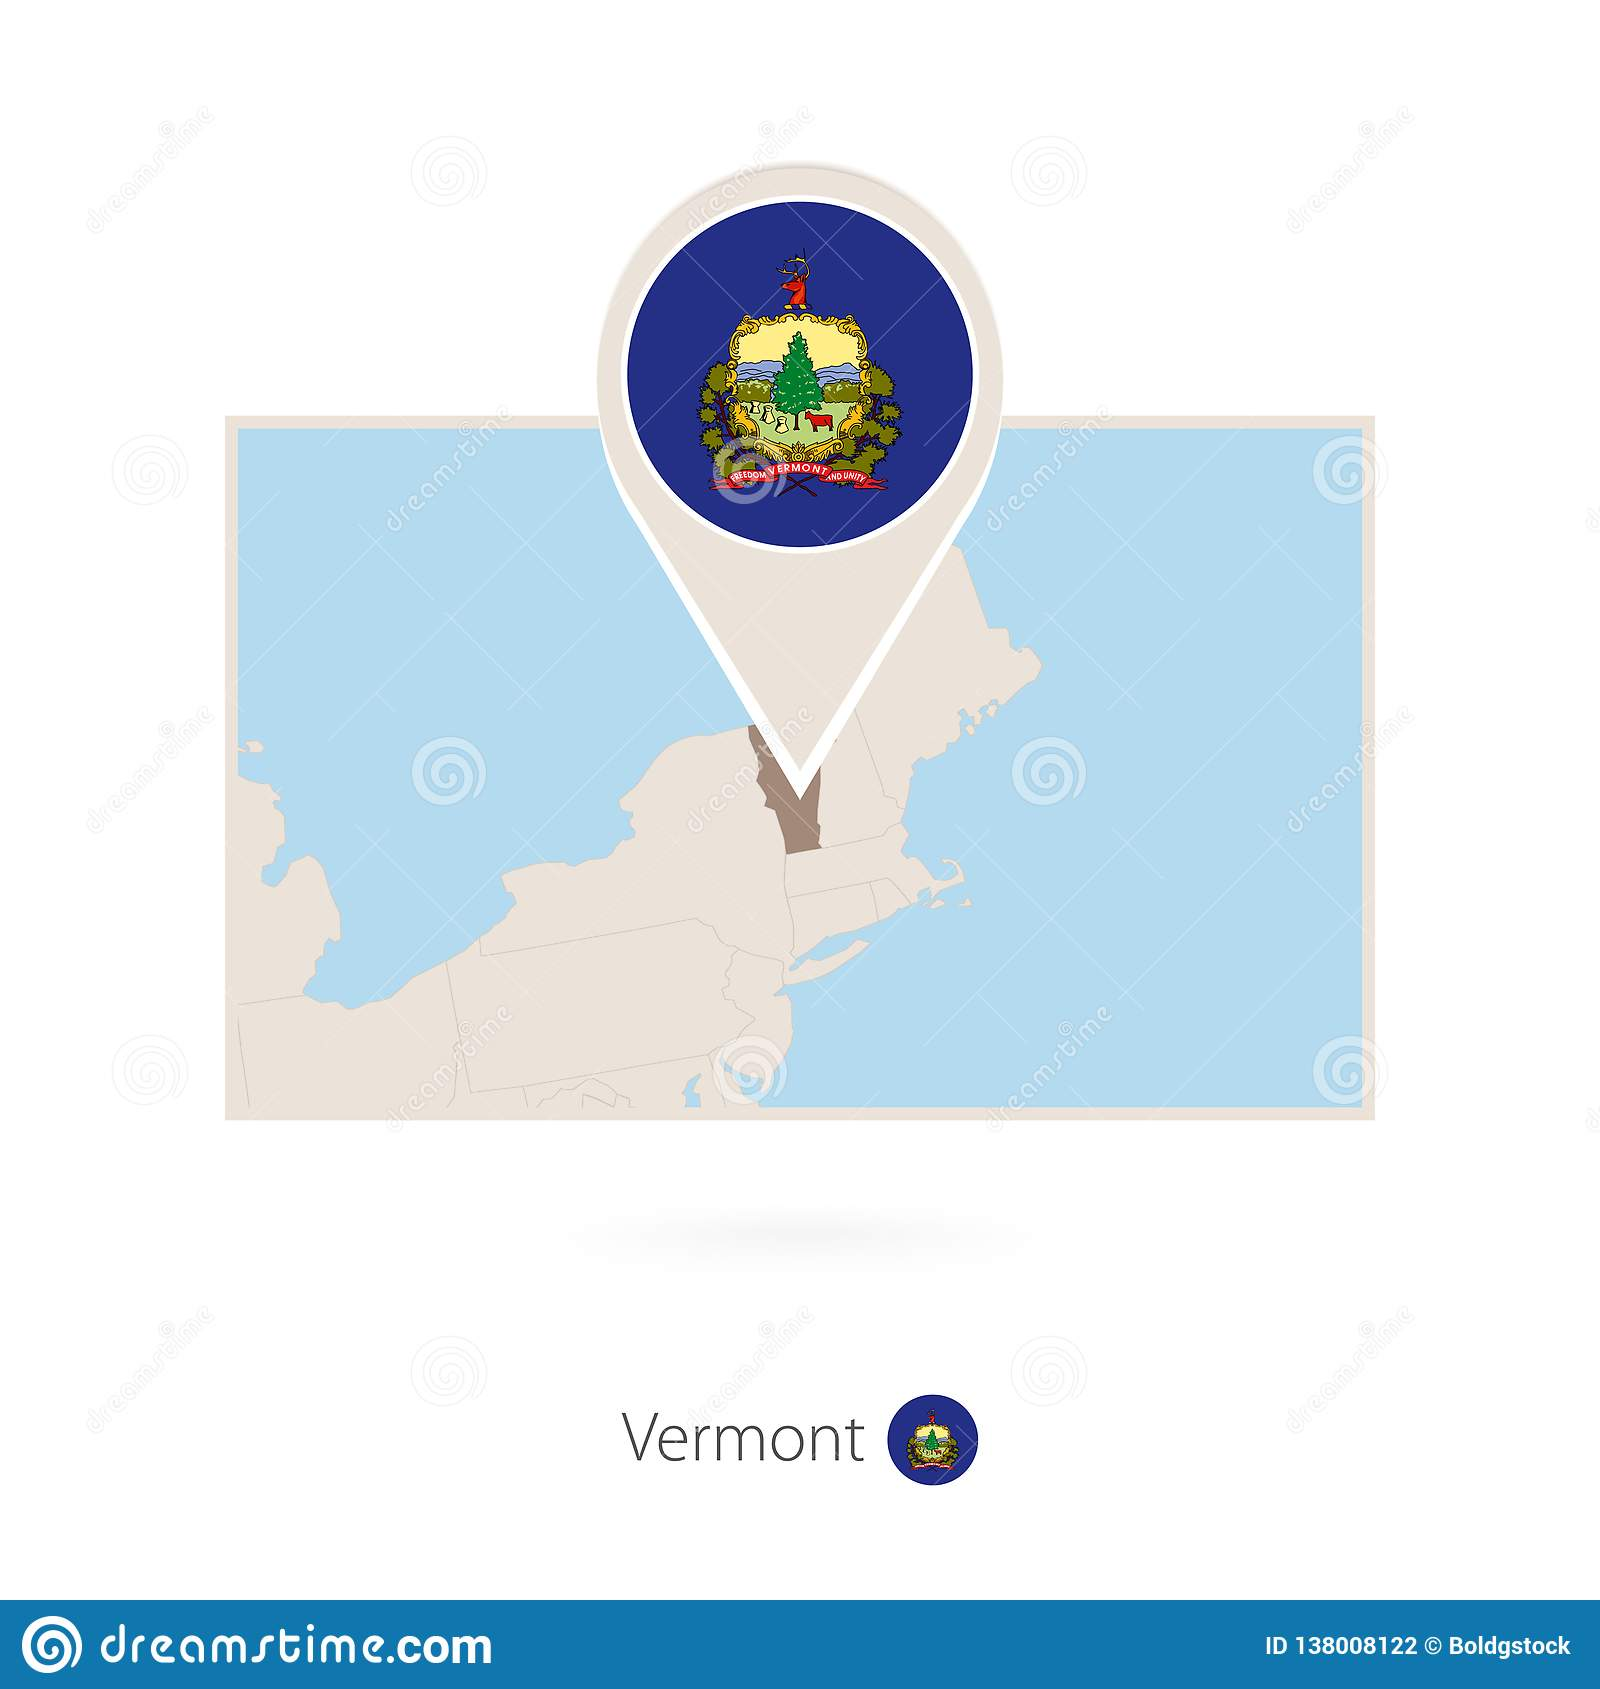 The map legend is sometimes called the map key. Rectangular Map Of Us State Vermont With Pin Icon Of Vermont Stock Vector Illustration Of Rectangle Contour 138008122